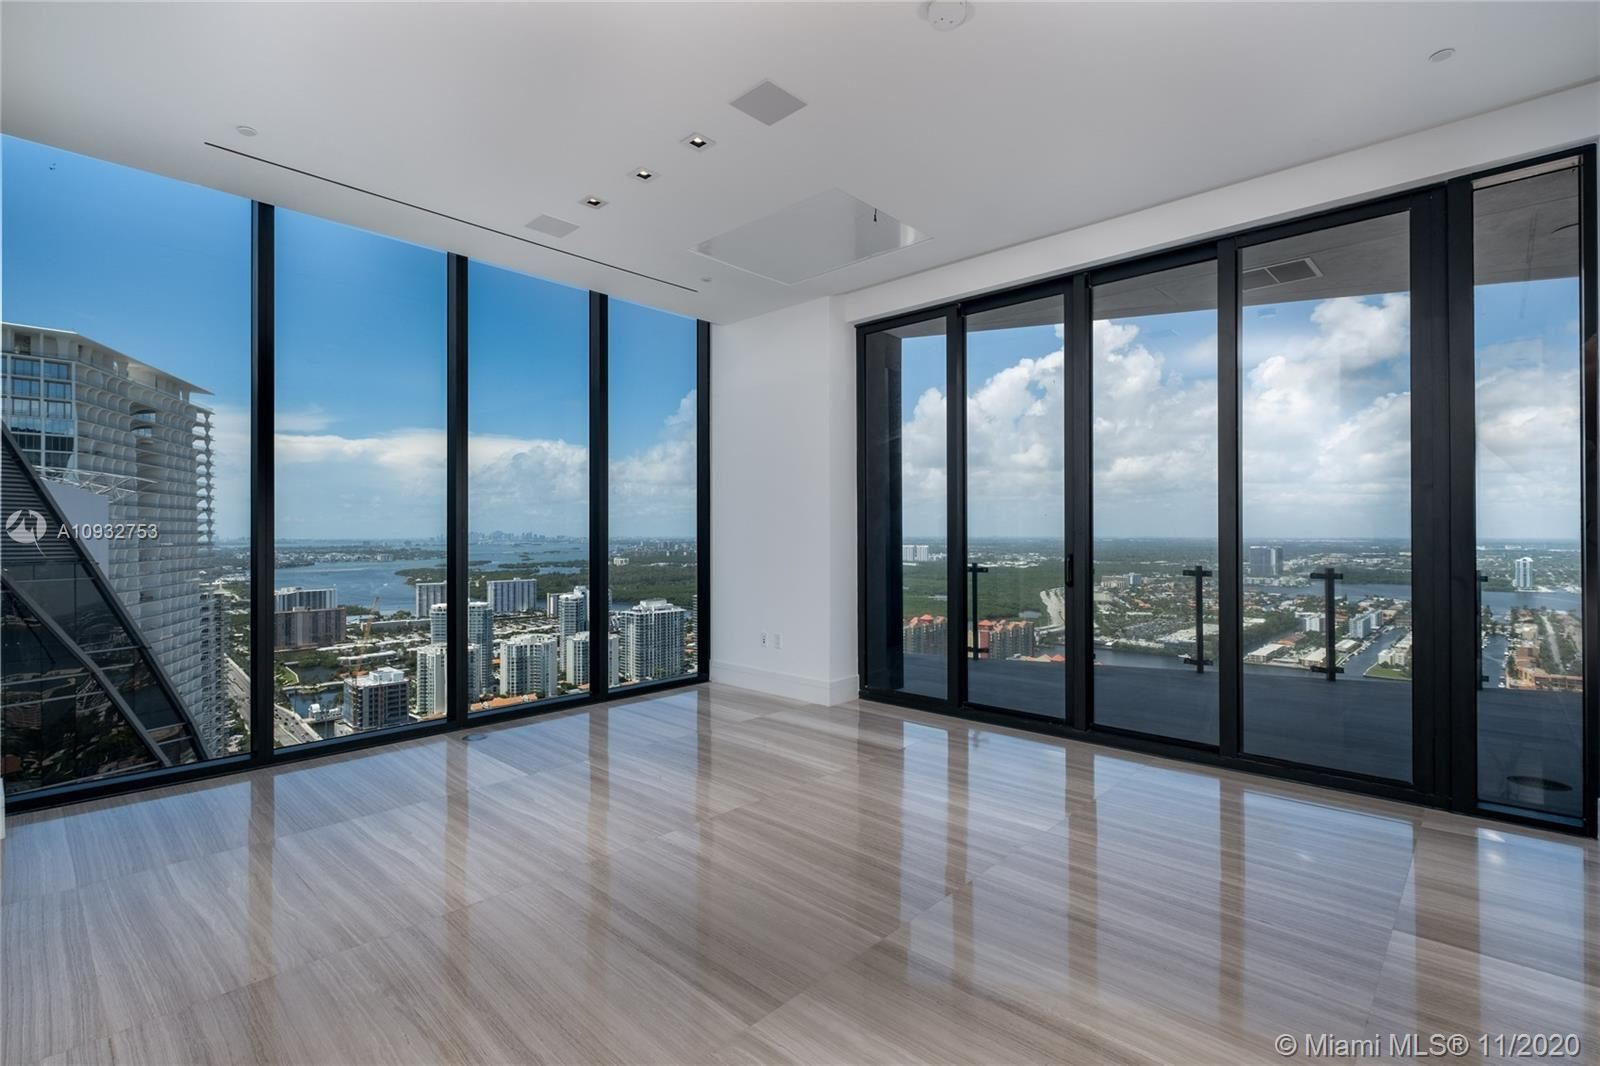 Photo of 17141 Collins Ave #4102, Sunny Isles Beach, FL 33160 (MLS # A10932753)